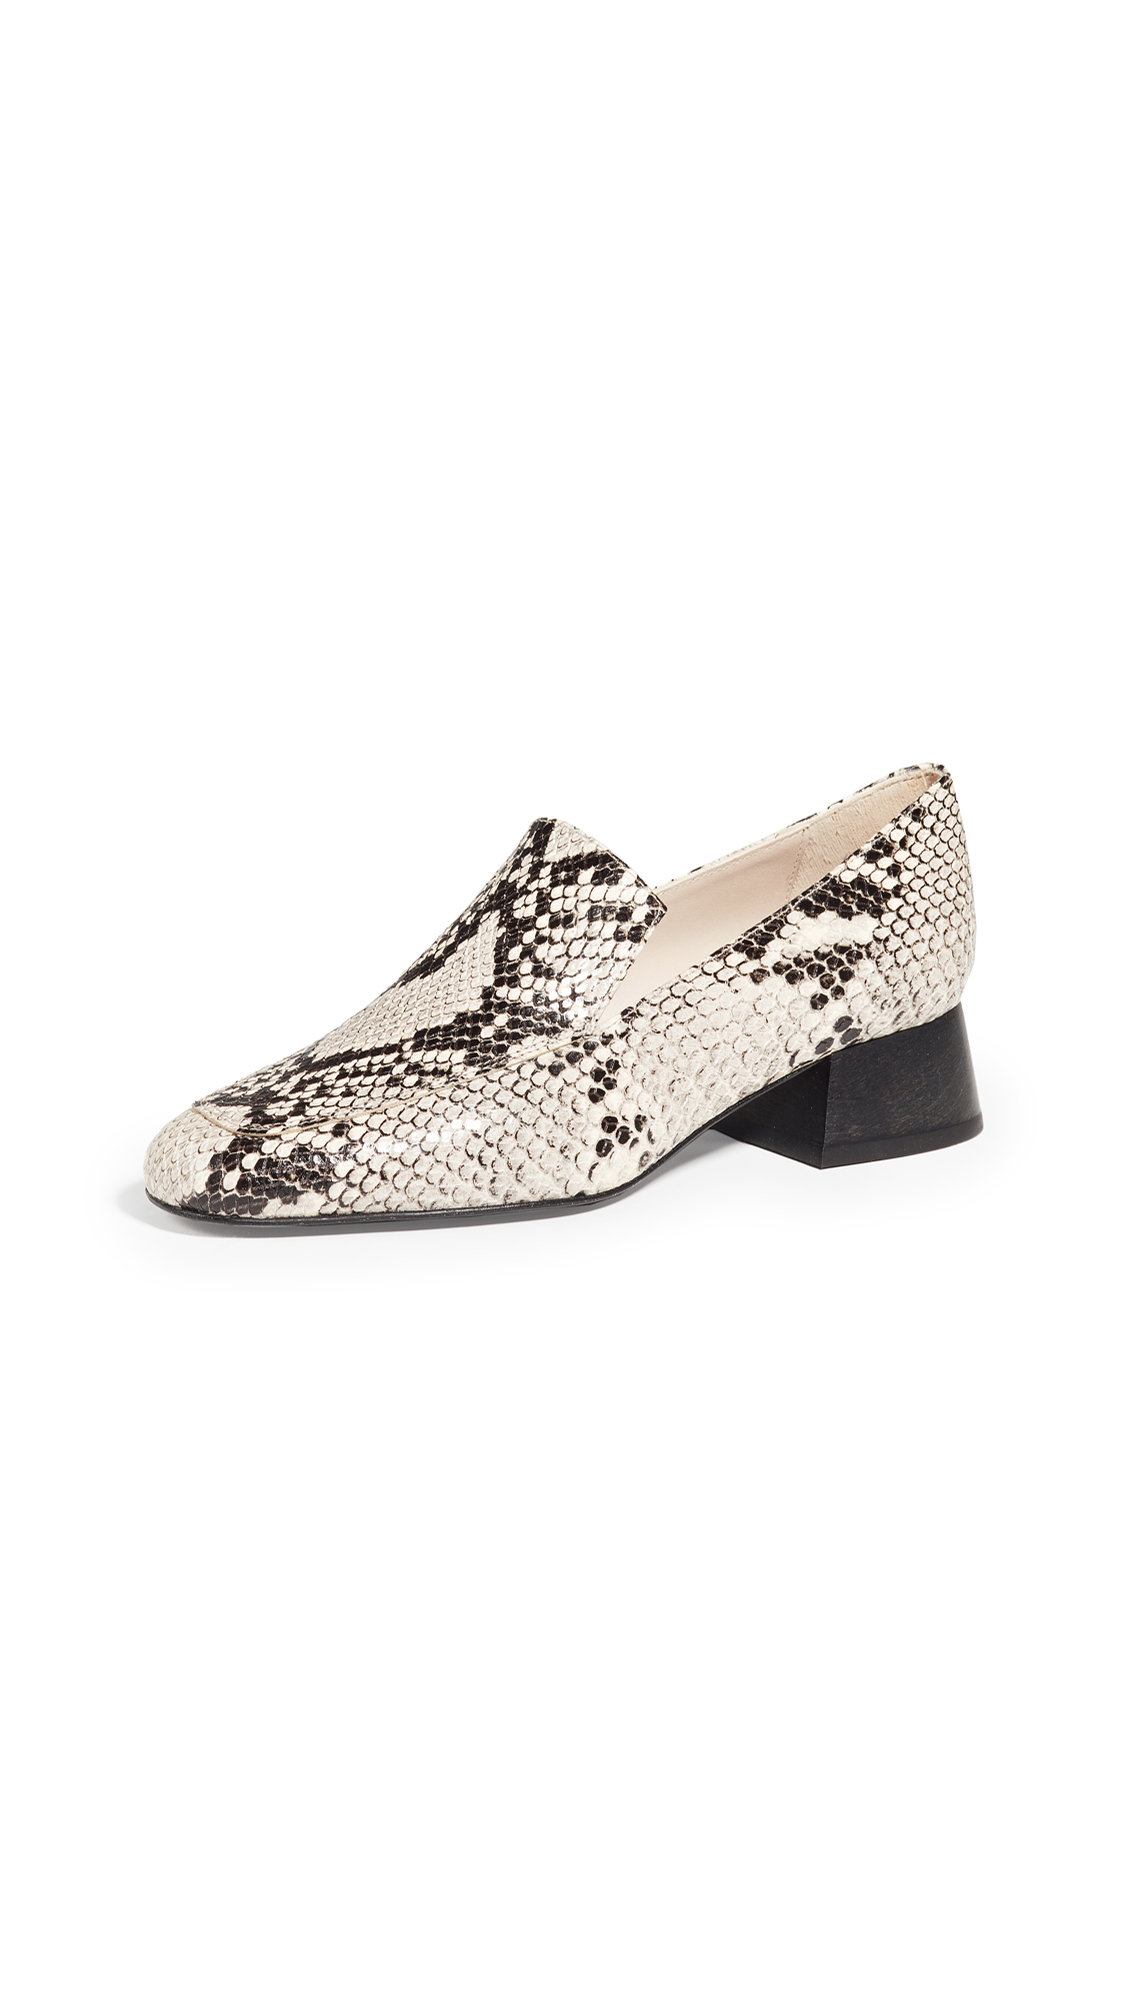 Buy Freda Salvador Cooper Heeled Loafers online, shop Freda Salvador